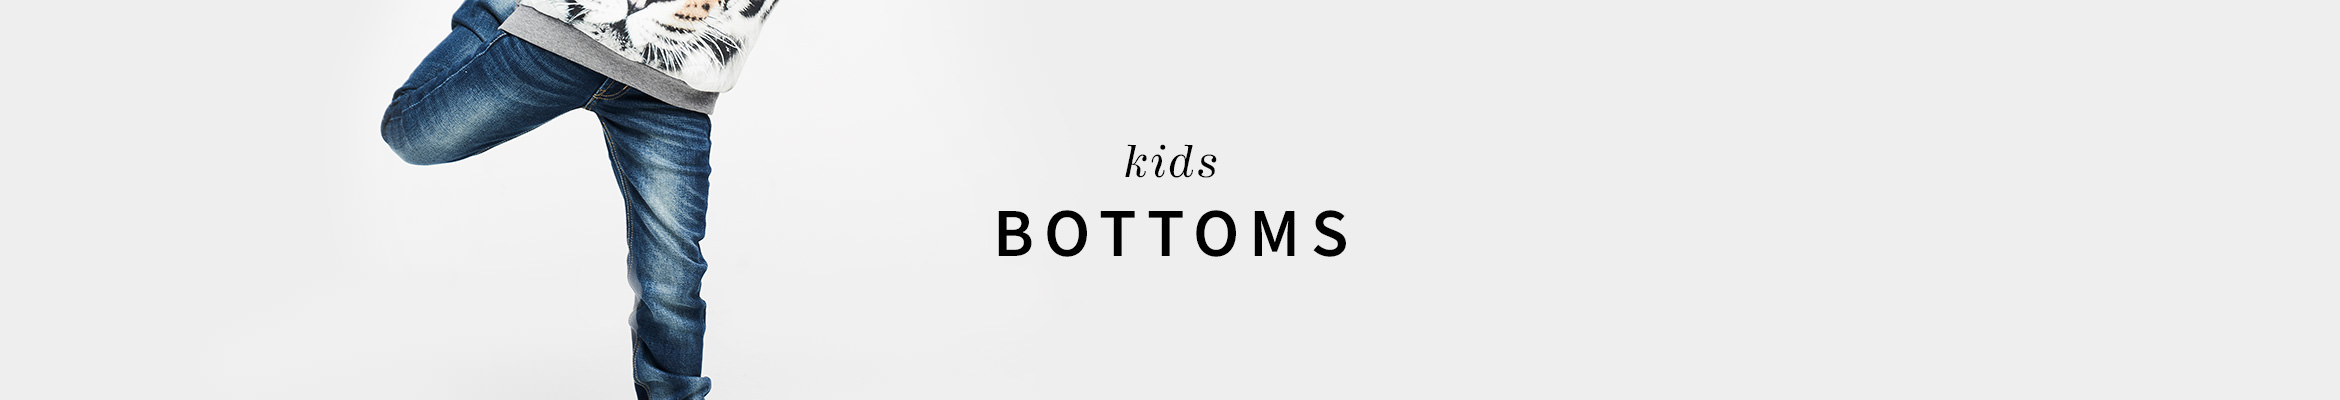 Aw16_bottoms_k_en